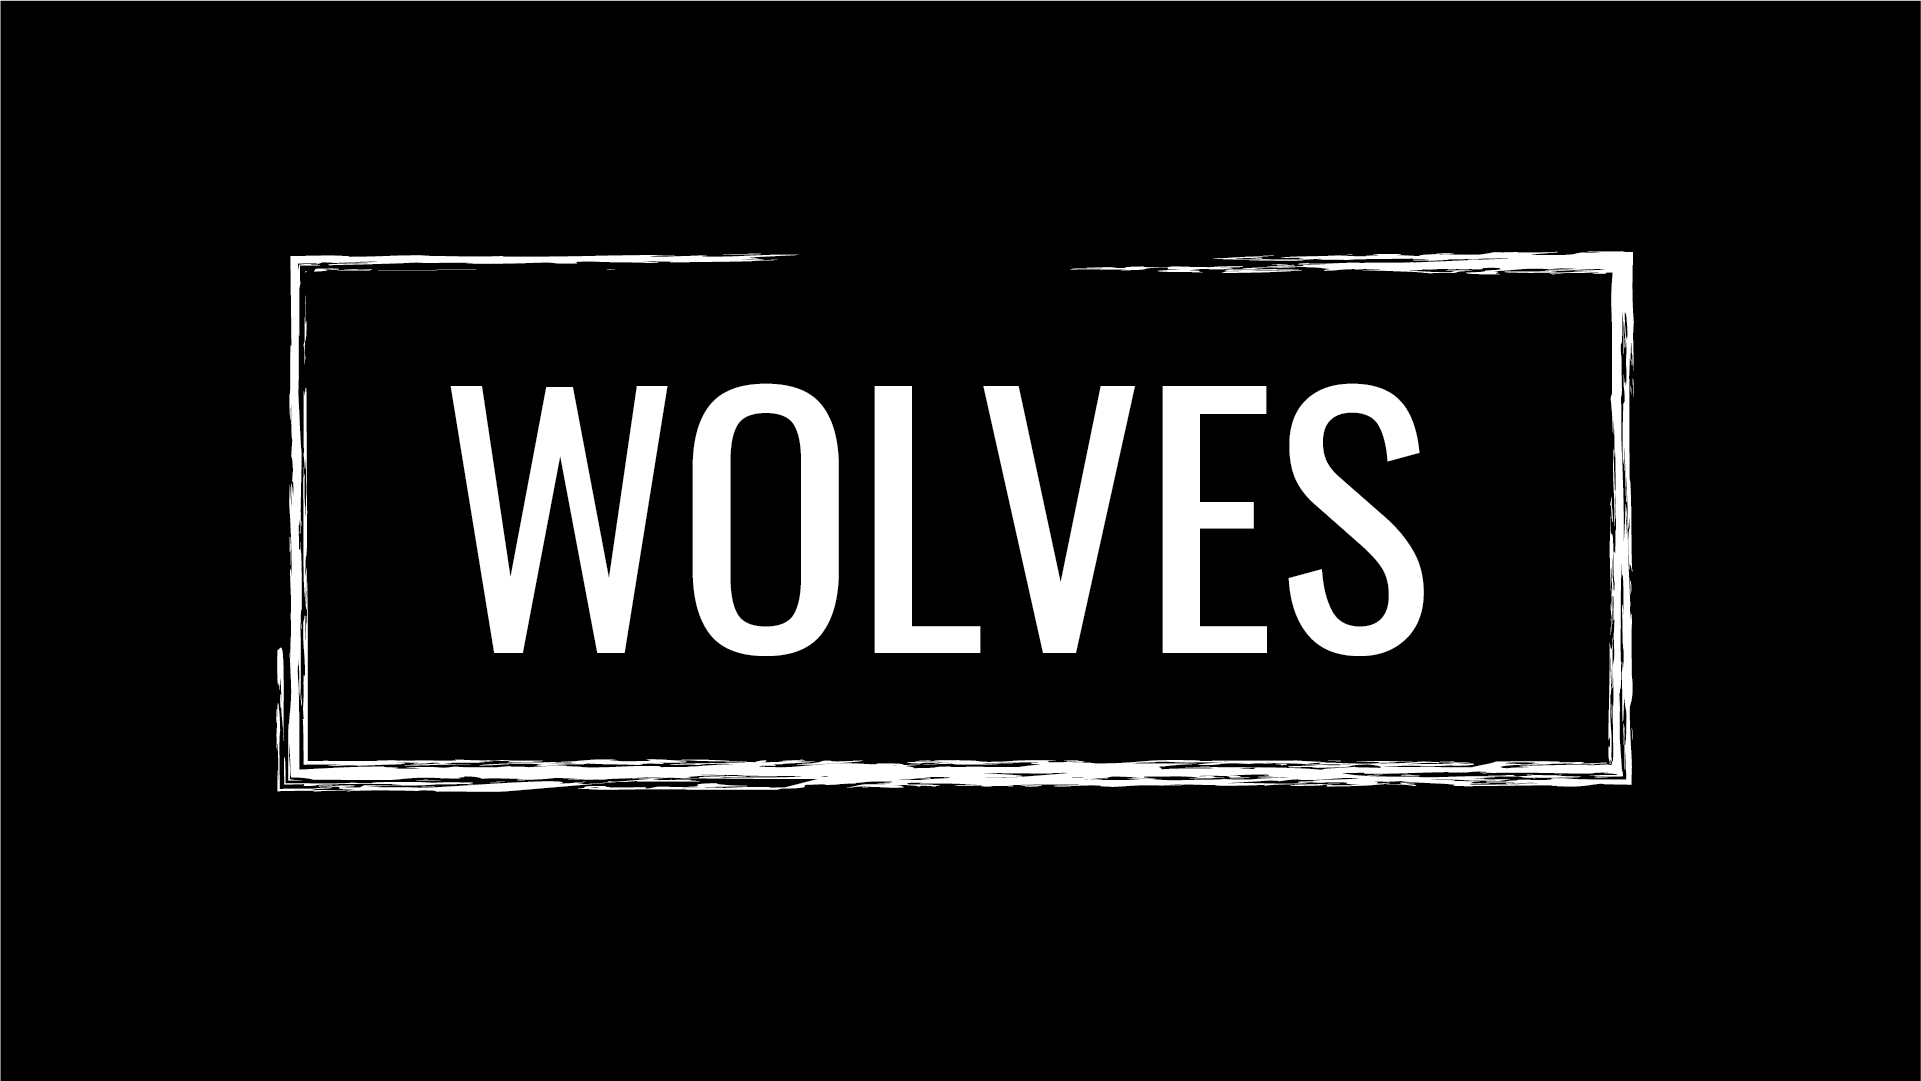 wolves-04.png